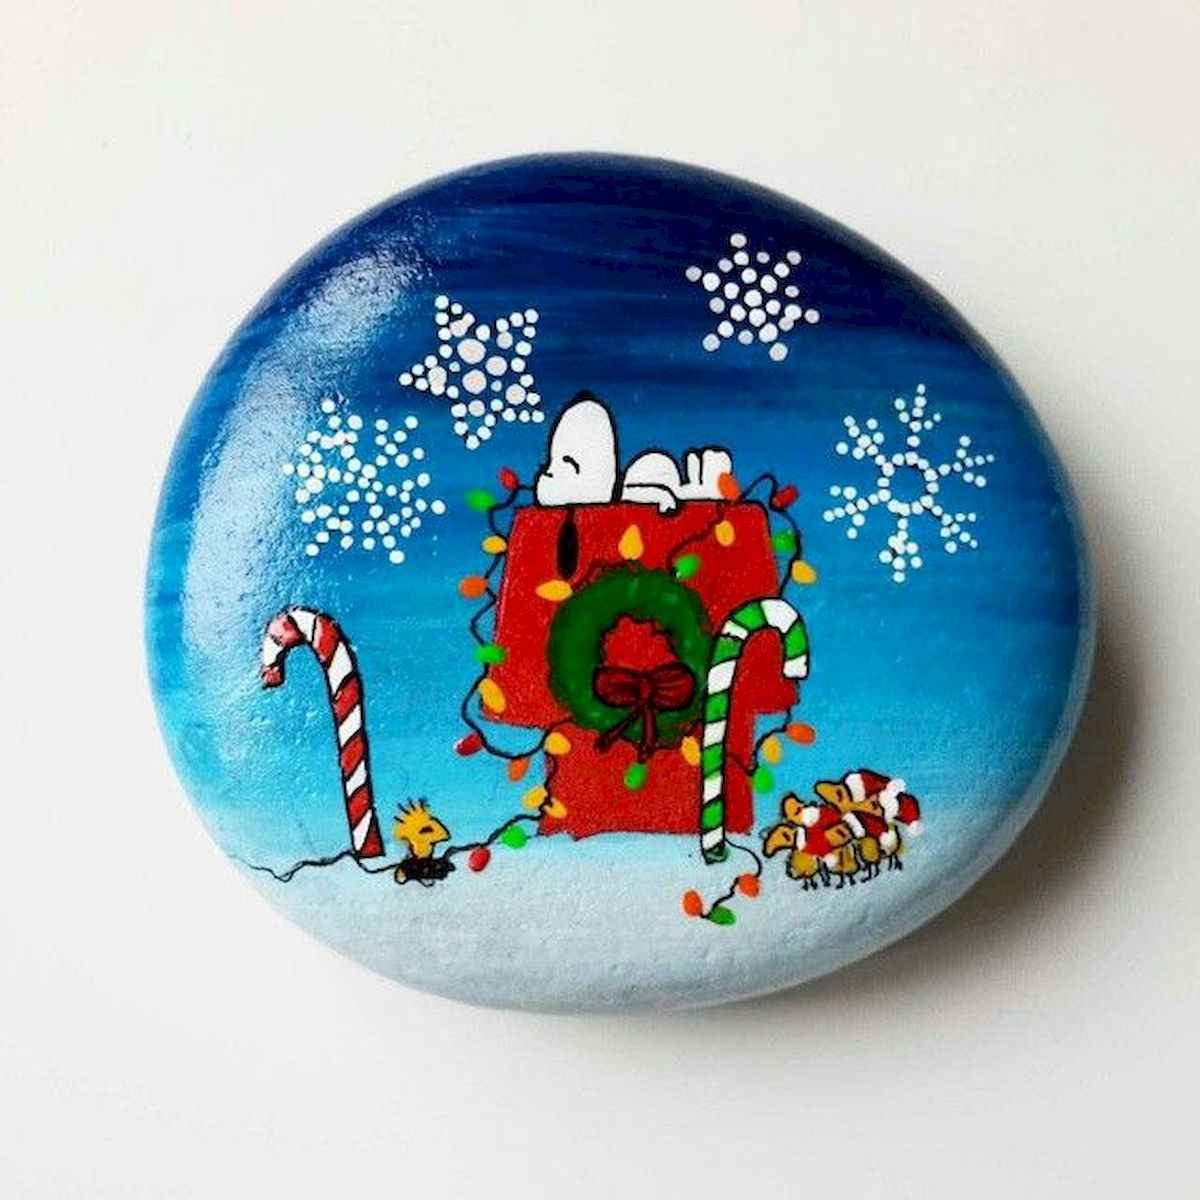 50 Easy DIY Christmas Painted Rock Design Ideas (46)